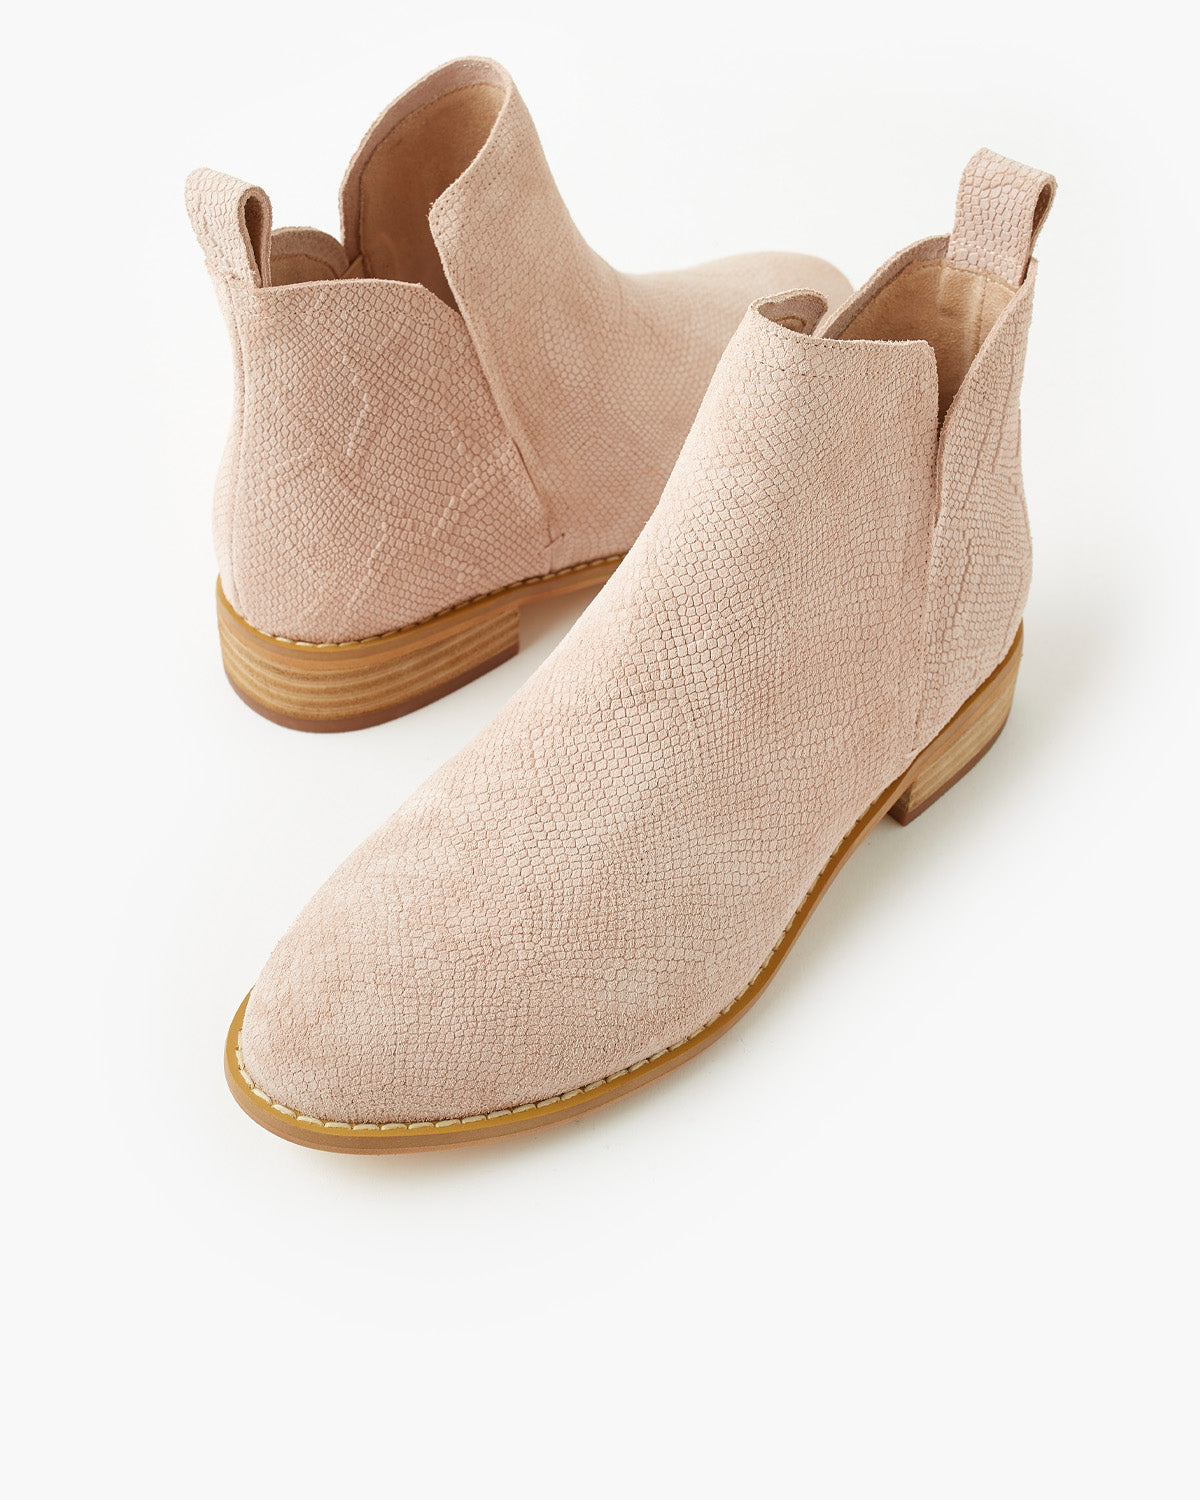 Douglas Leather Boot - Blush Snake